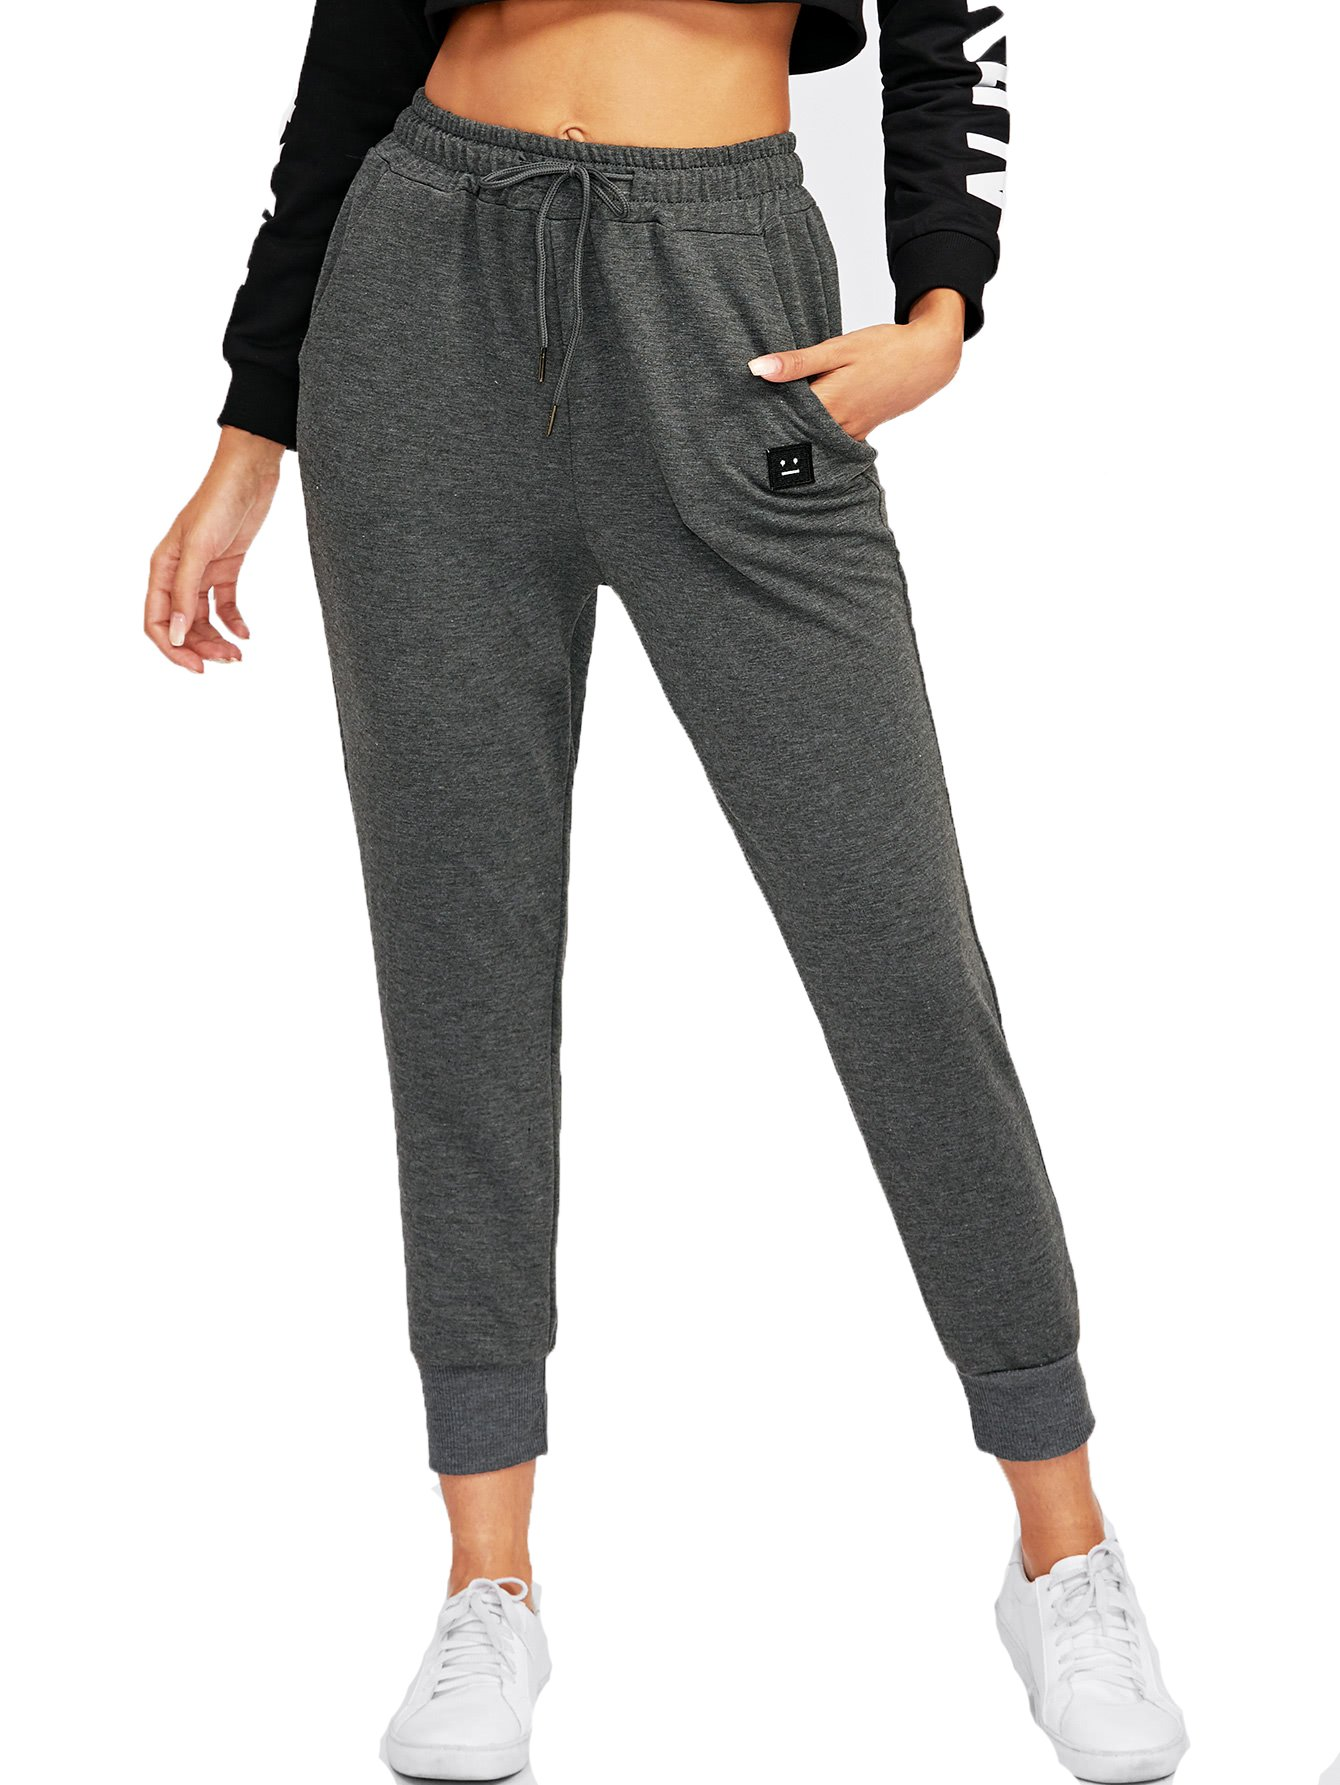 SweatyRocks Women's Sweatpants Yoga Workout Athletic Joggers Pants with Pockets (X-Large, Dark Grey#)